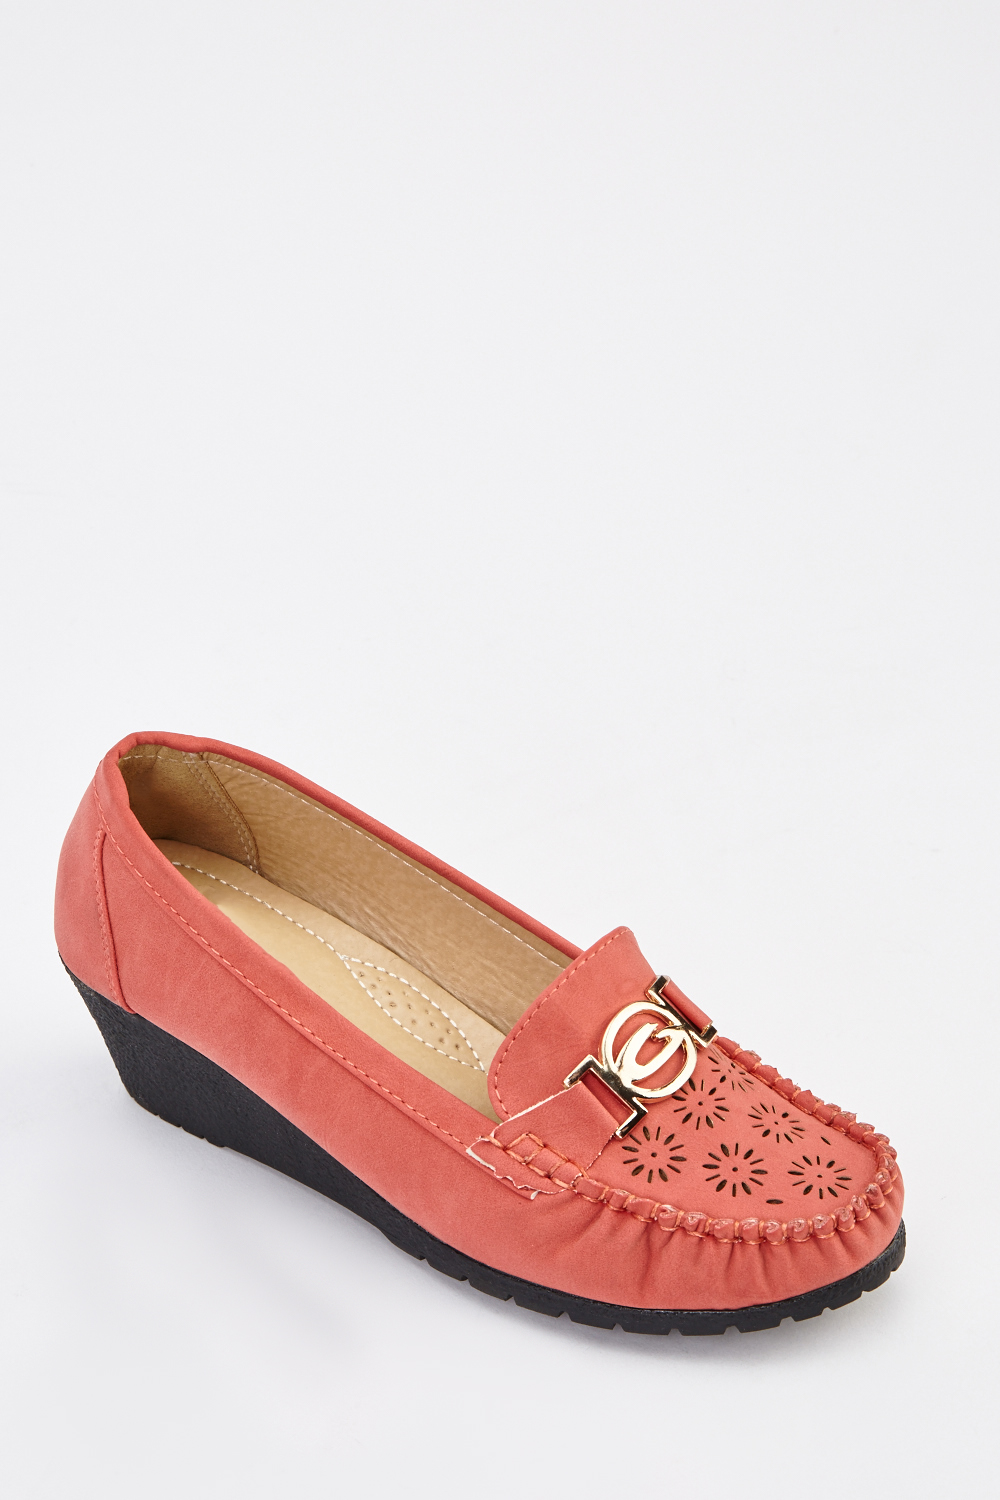 625f26d7a41 Detailed Front Wedge Moccasin Shoes - Just £5